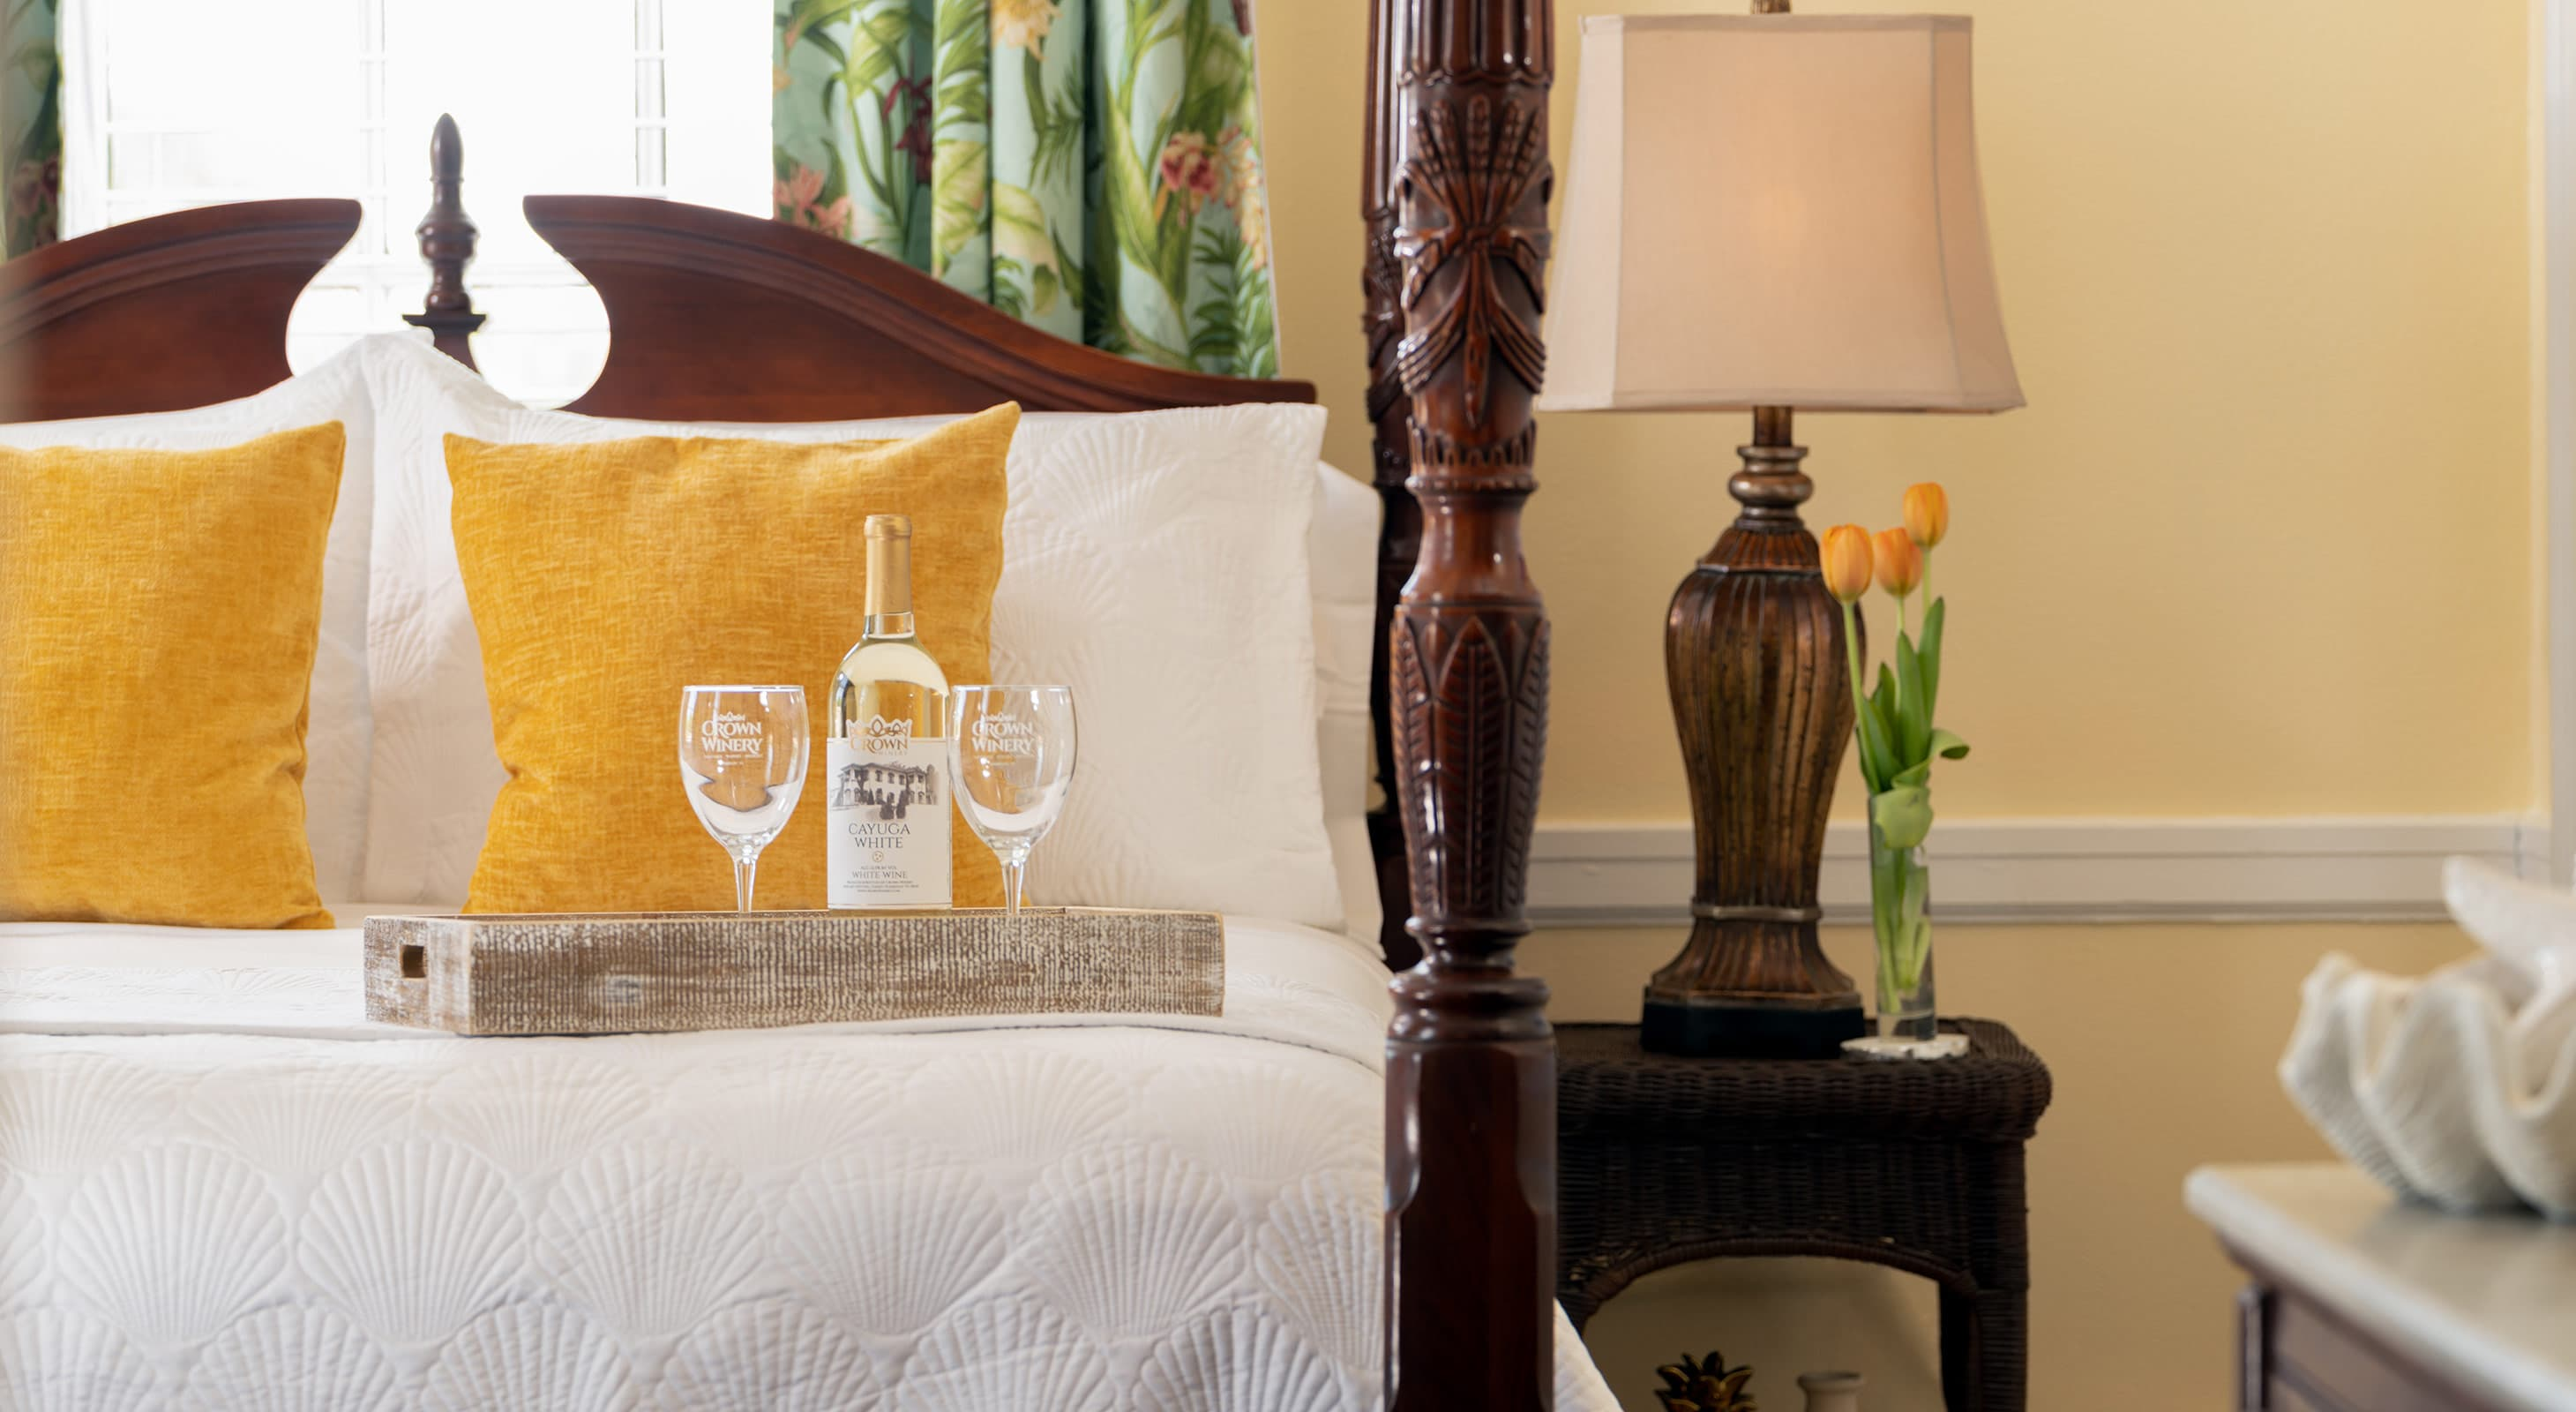 White wine and glasses for a romantic Tennessee getaway